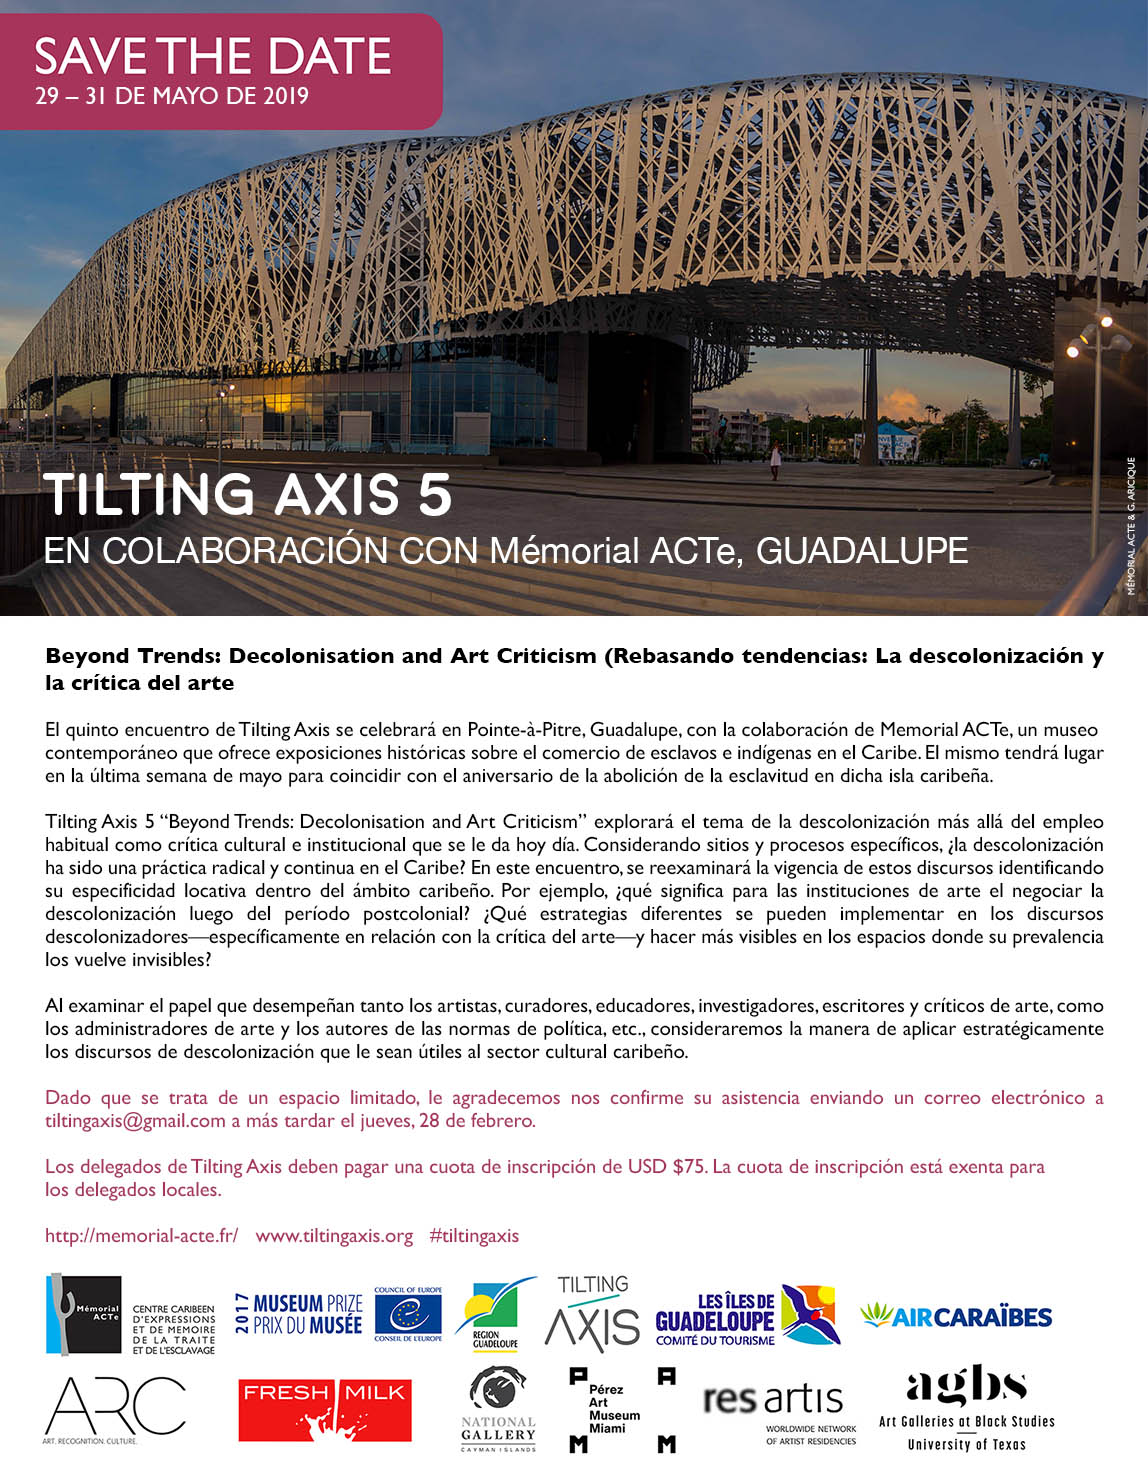 Tilting_Axis_5_Flyer_Spanish_r1.jpg